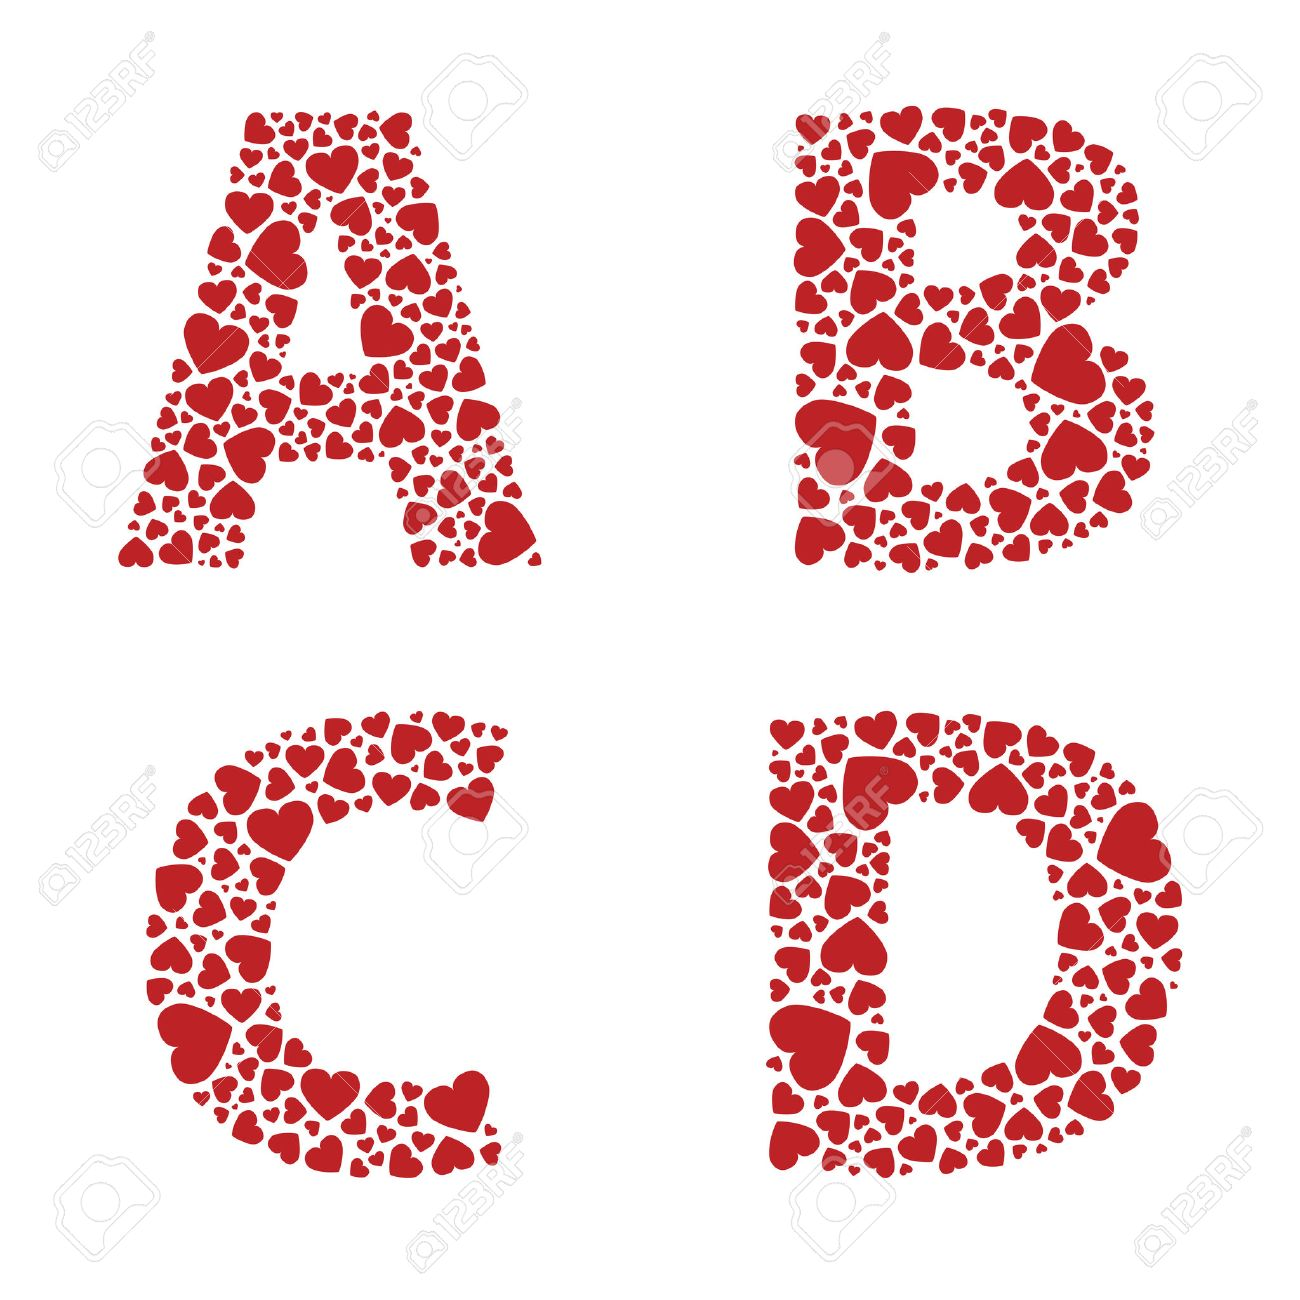 Abcd Heart Alphabet Letters Font Royalty Free Cliparts Vectors And